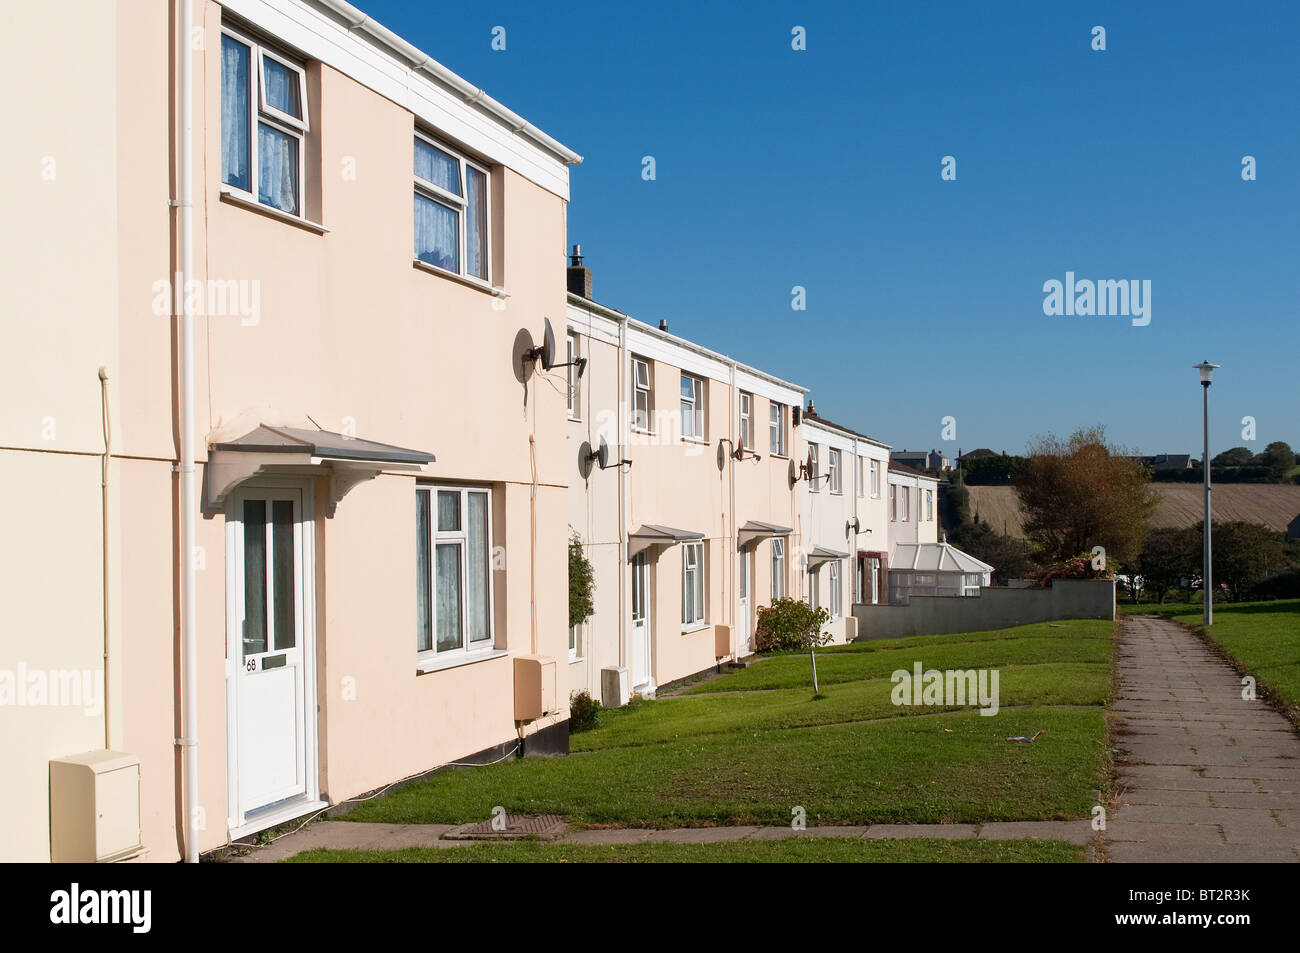 council housing in redruth, cornwall, uk - Stock Image